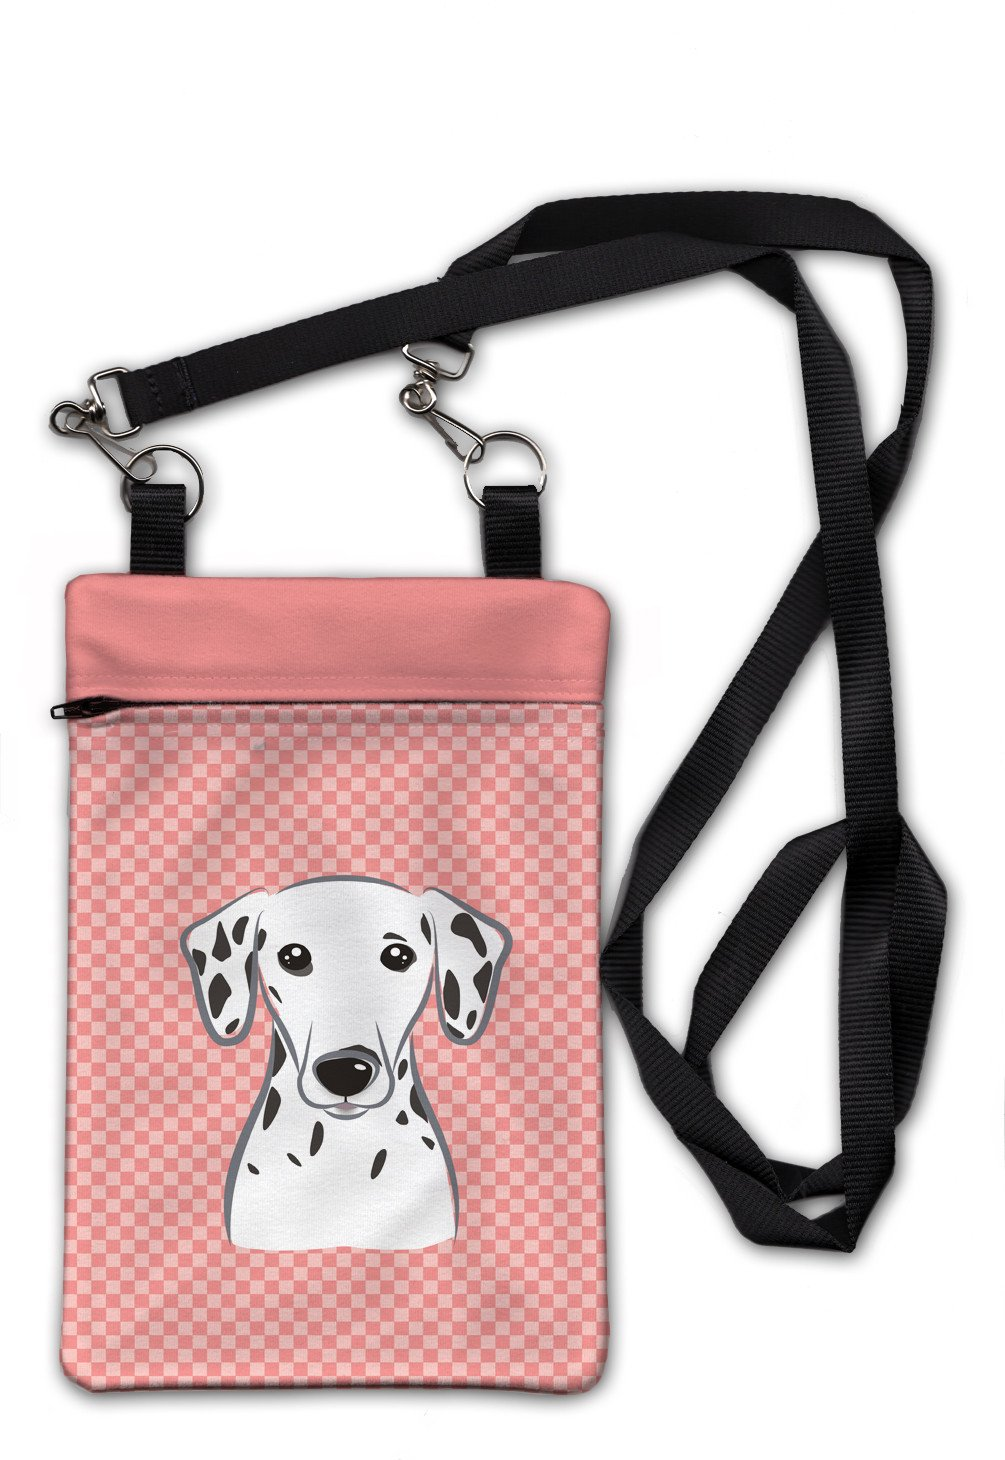 Checkerboard Pink Dalmatian Crossbody Bag Purse BB1210OBDY by Caroline's Treasures